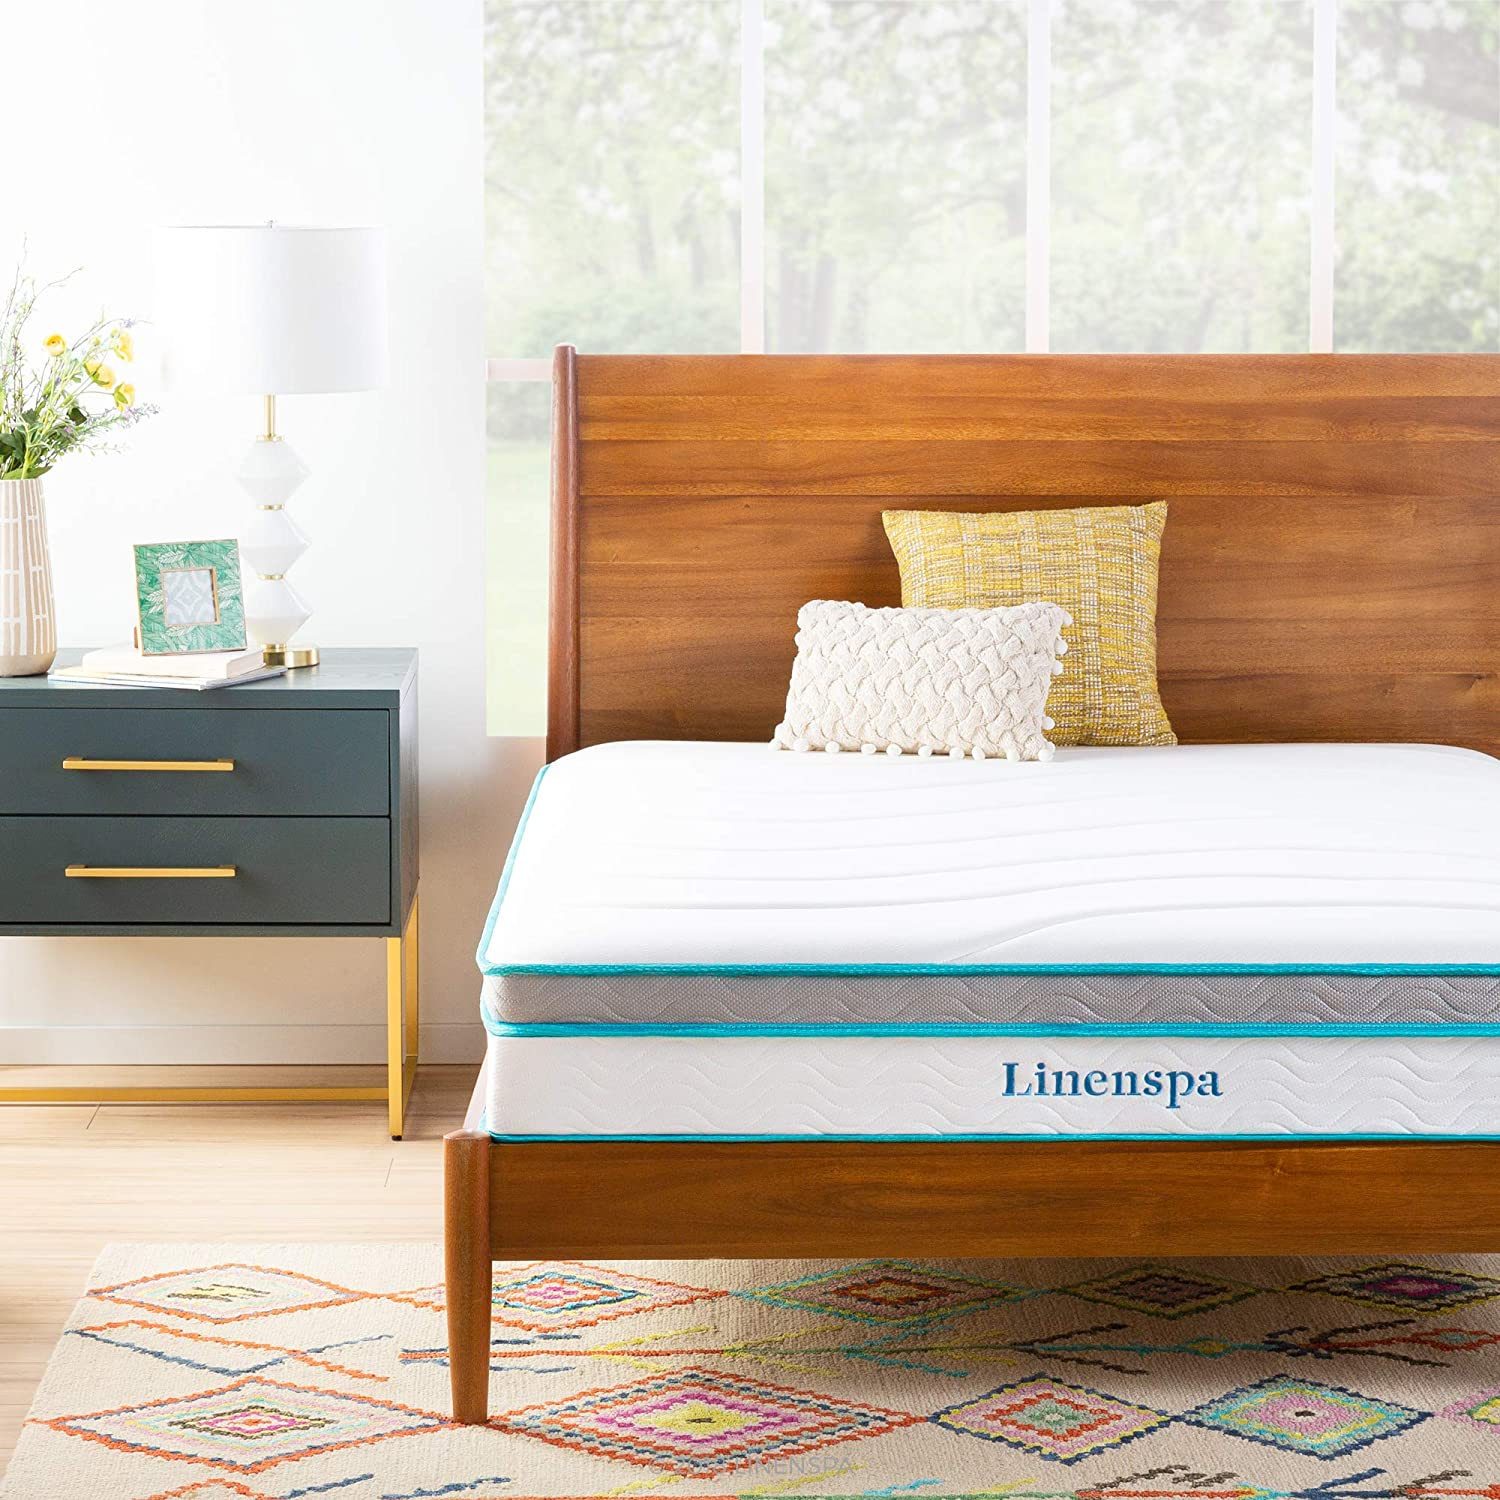 10 best mattresses for back pain in 2021. Linenspa Hybrid Mattress photo.